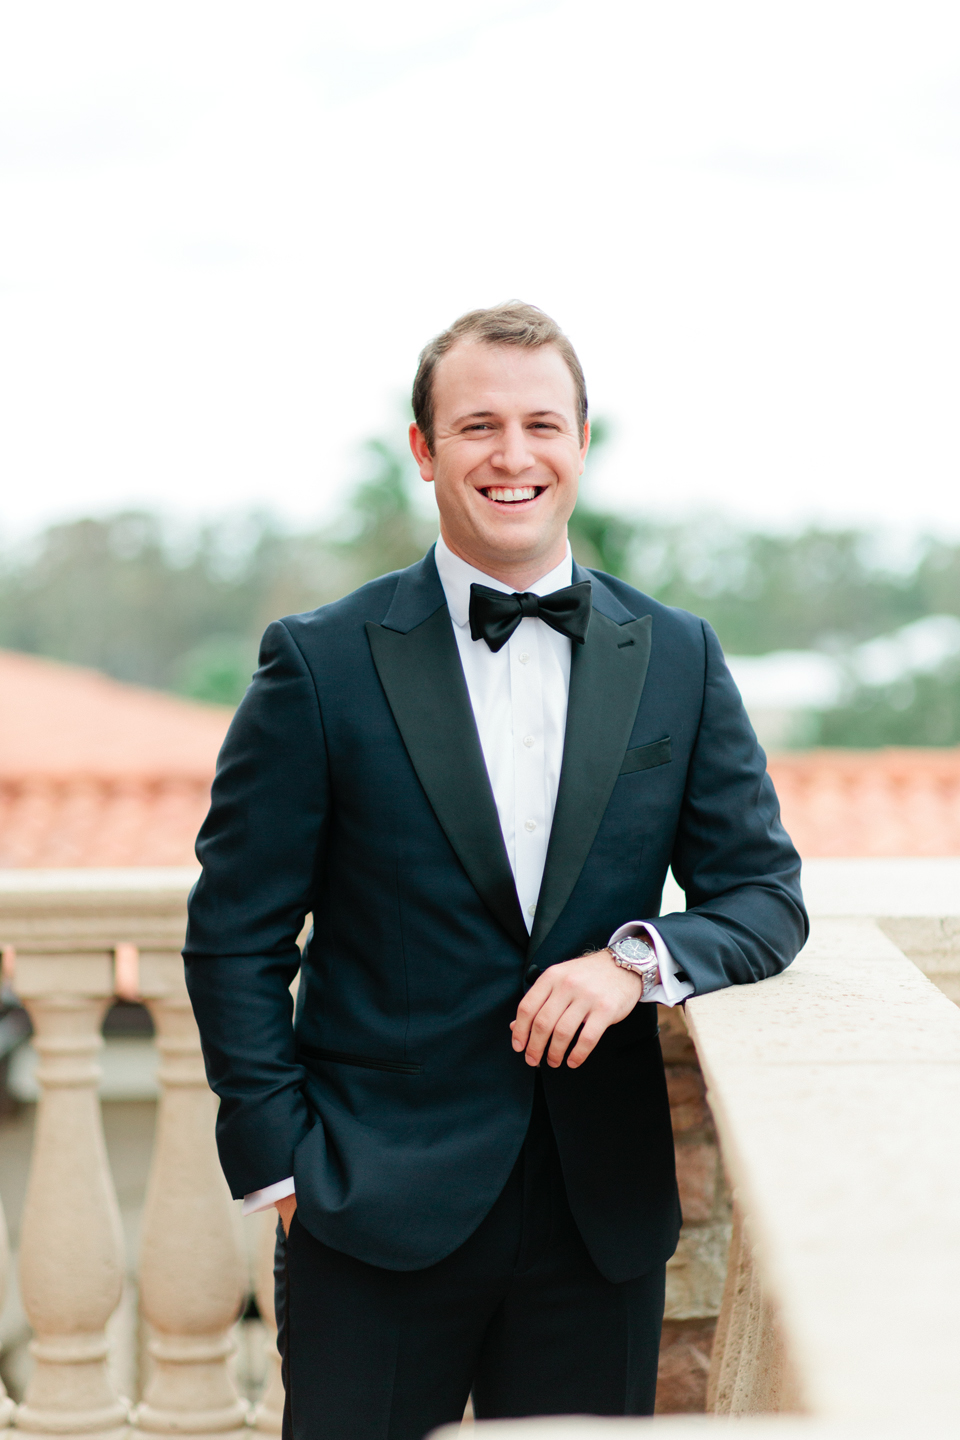 Image of a groom in a black tuxedo on the second floor of the TPC Sawgrass in Ponte Vedra, Florida